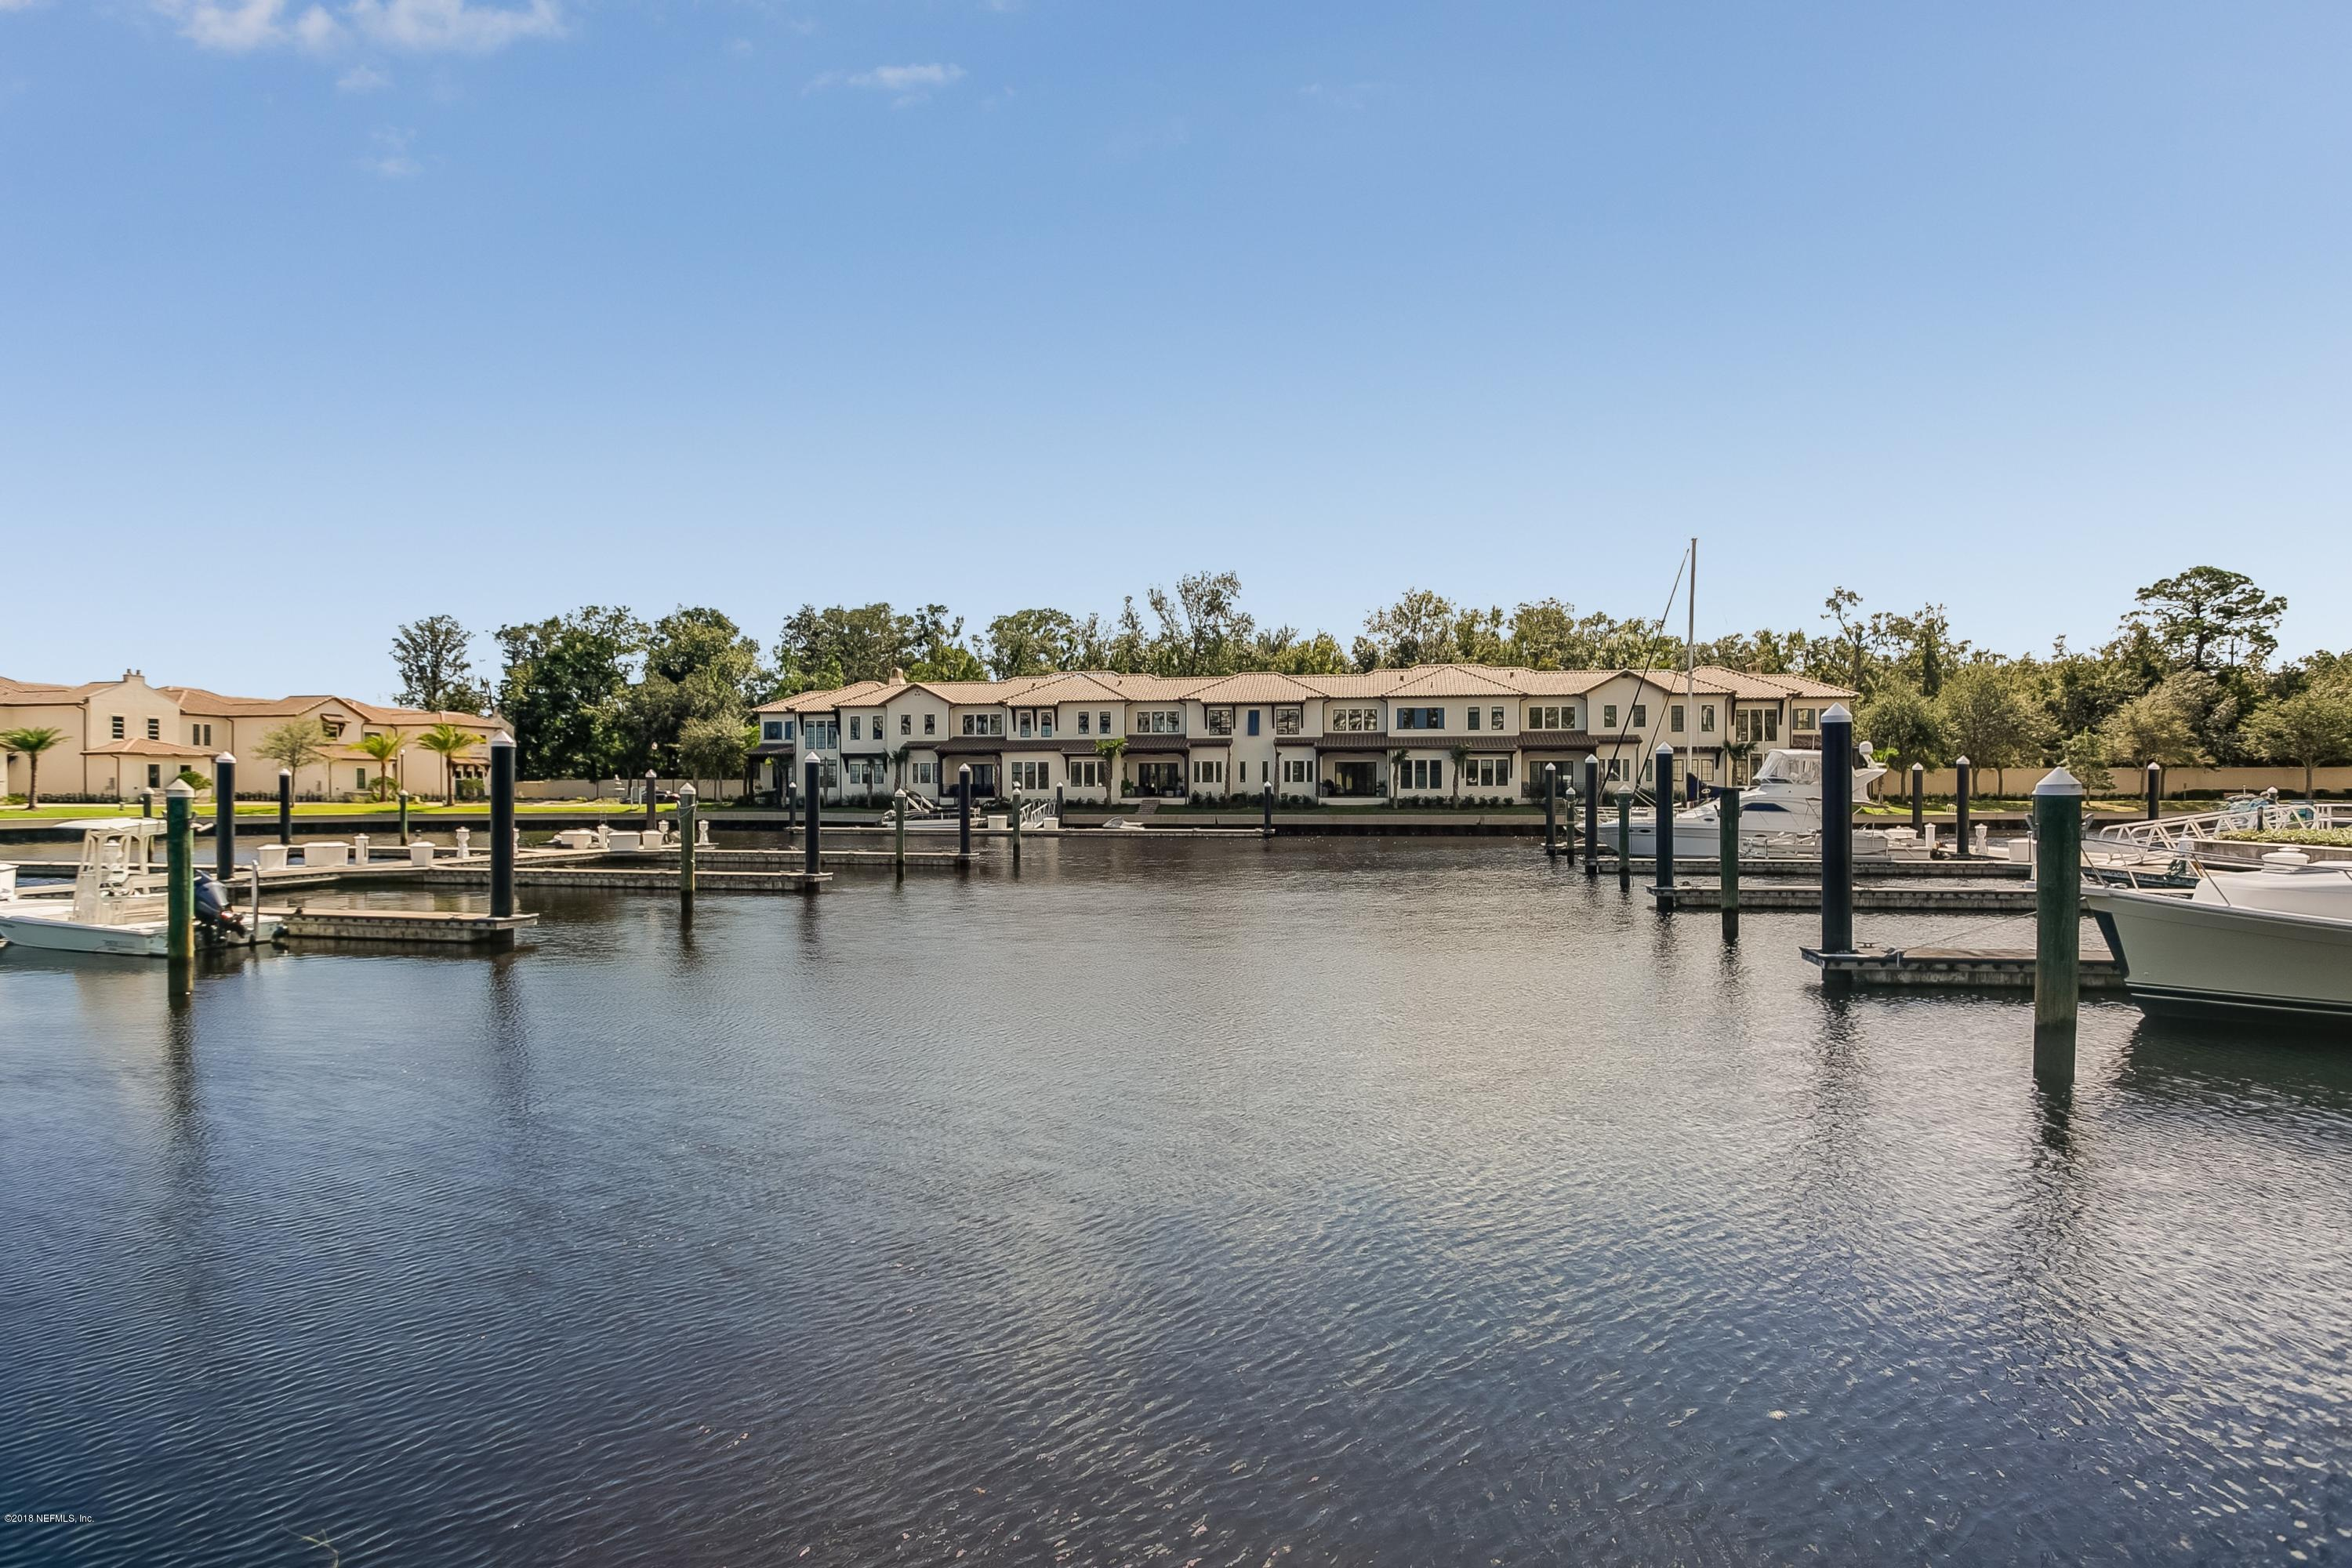 14402 MARINA SAN PABLO, JACKSONVILLE, FLORIDA 32224, 3 Bedrooms Bedrooms, ,3 BathroomsBathrooms,Residential,For sale,MARINA SAN PABLO,1040409